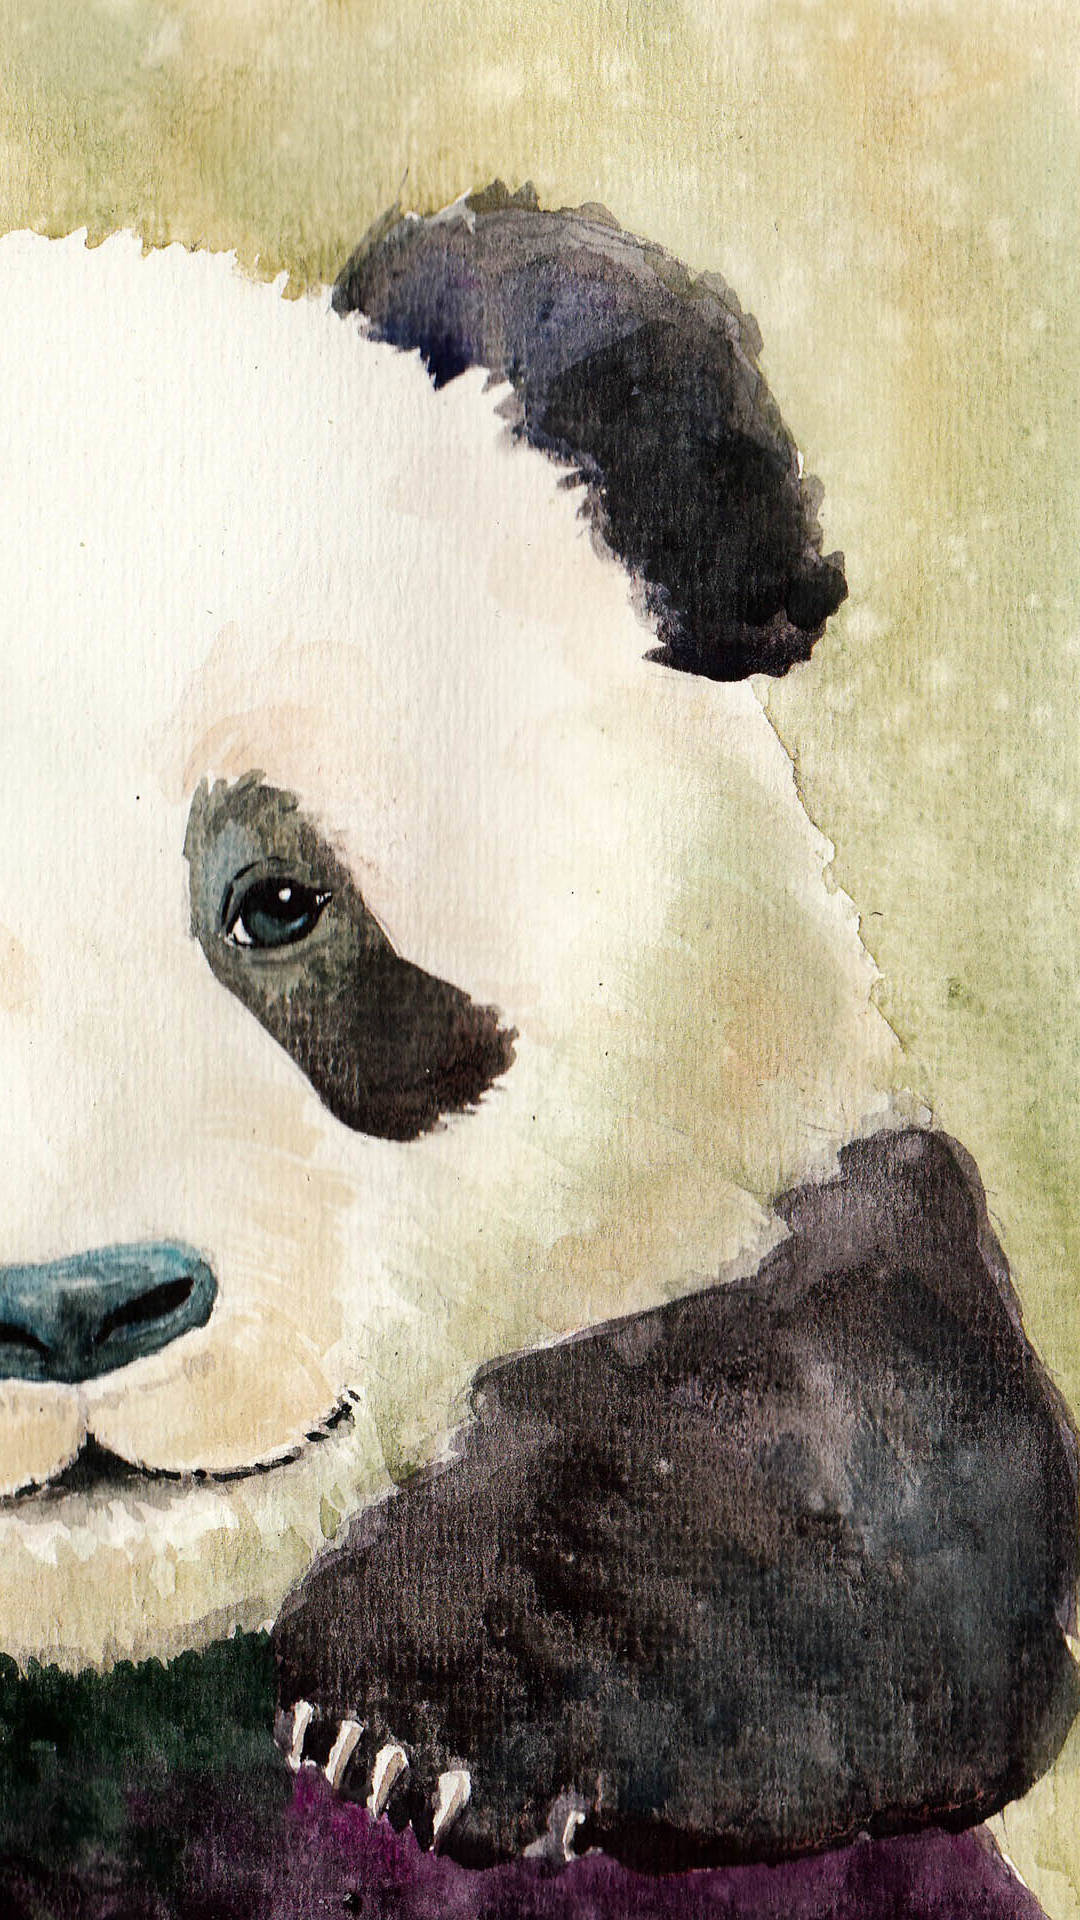 11 Cute Panda Wallpapers For IPhone With 1920x1080 Resolution